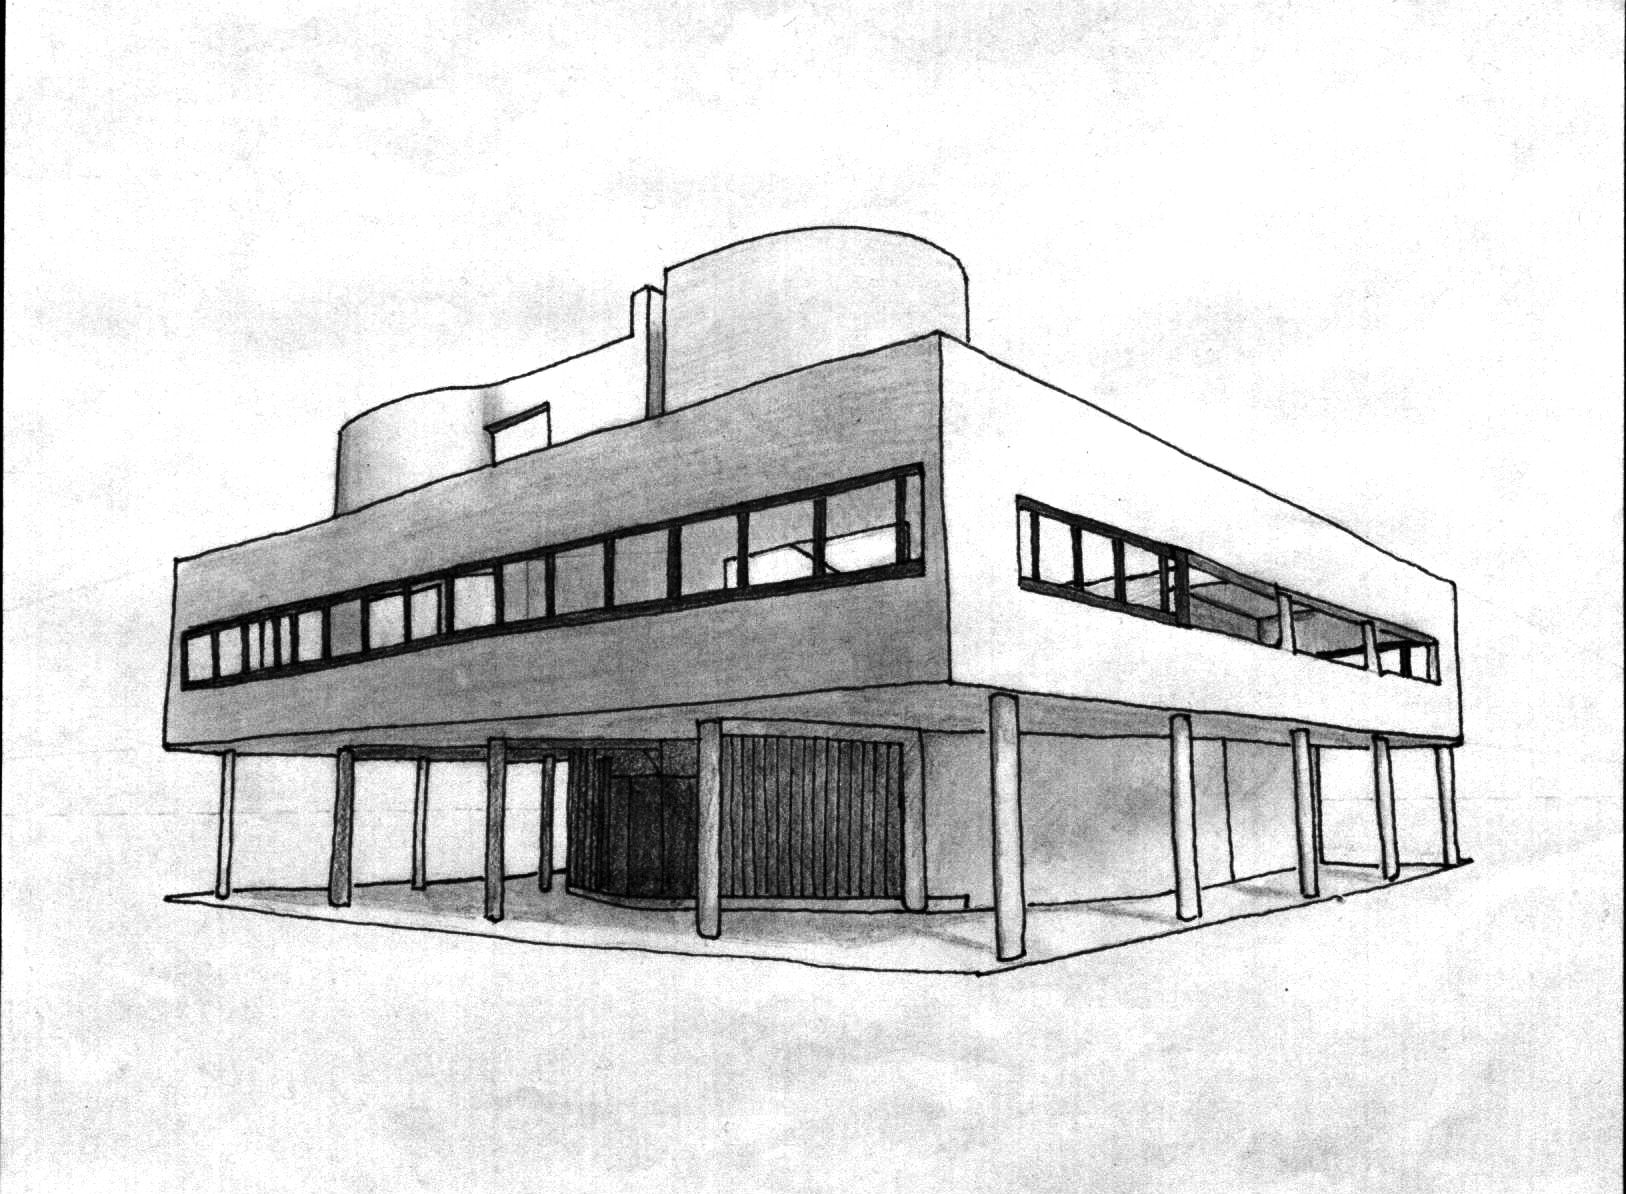 Villa savoye sketch architecture design drawing for Architecture design drawing